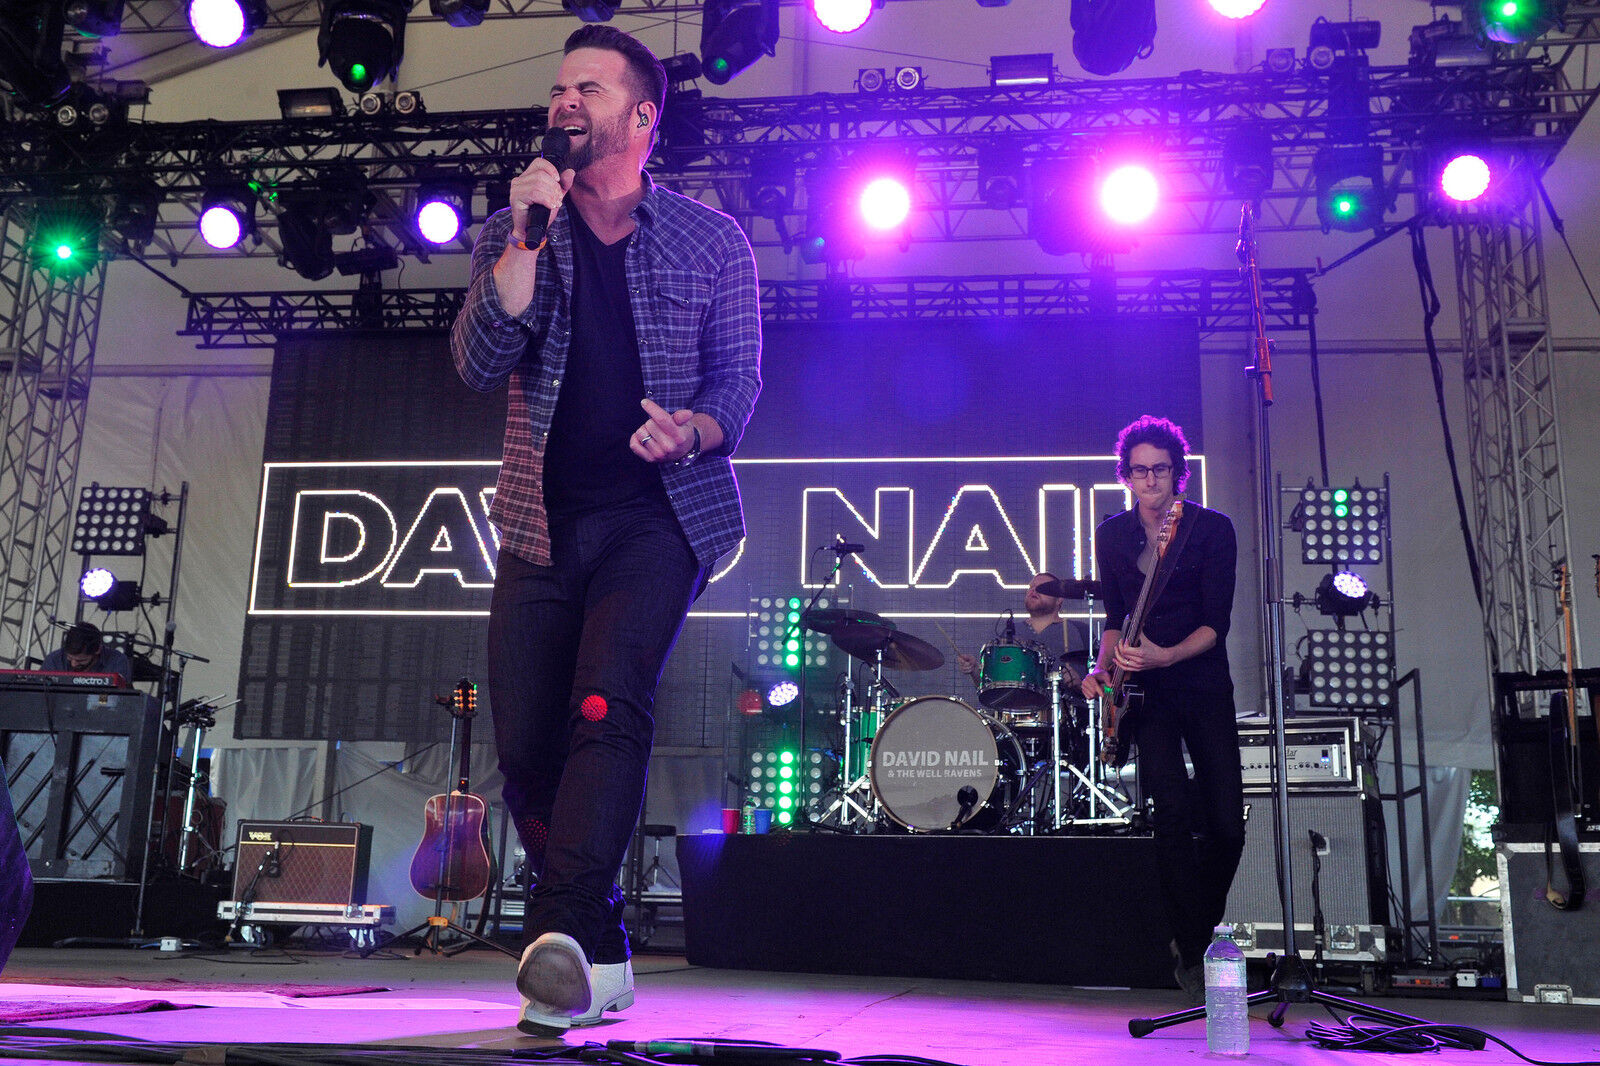 David Nail tickets - David Nail tour dates on StubHub!